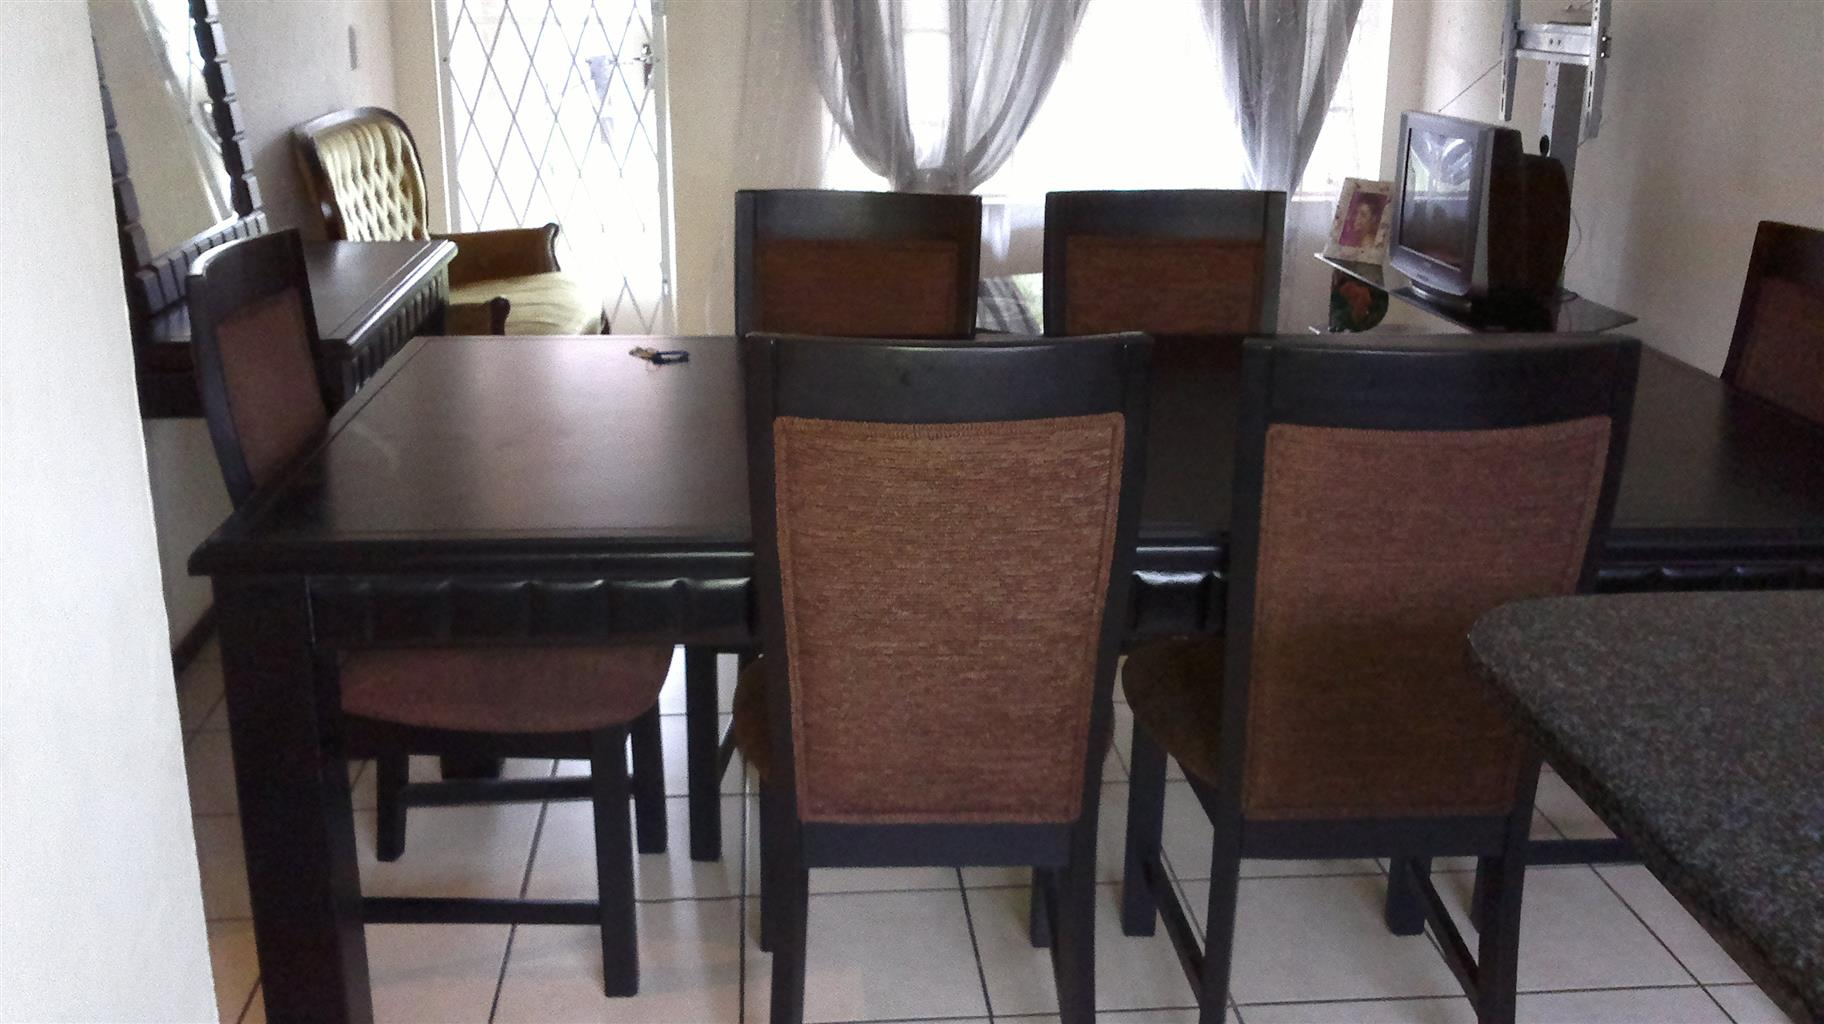 7 PIECES HOUSE U0026 HOME ITALIAN BALTIMORE DINNING TABLE